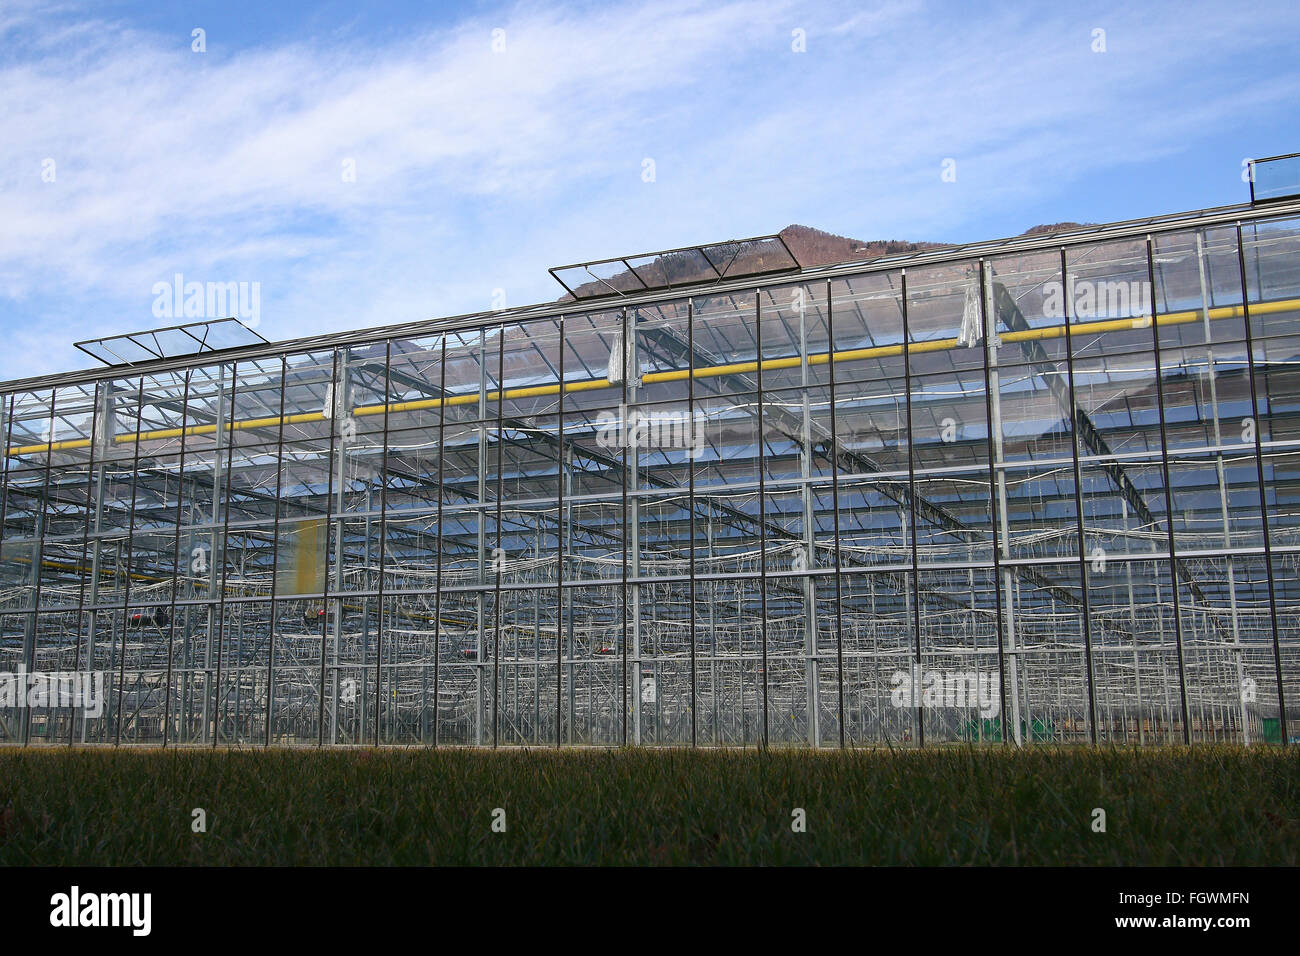 Modern greenhouse with temperature control,irrigation and solar panel operated lighting and windows - Stock Image